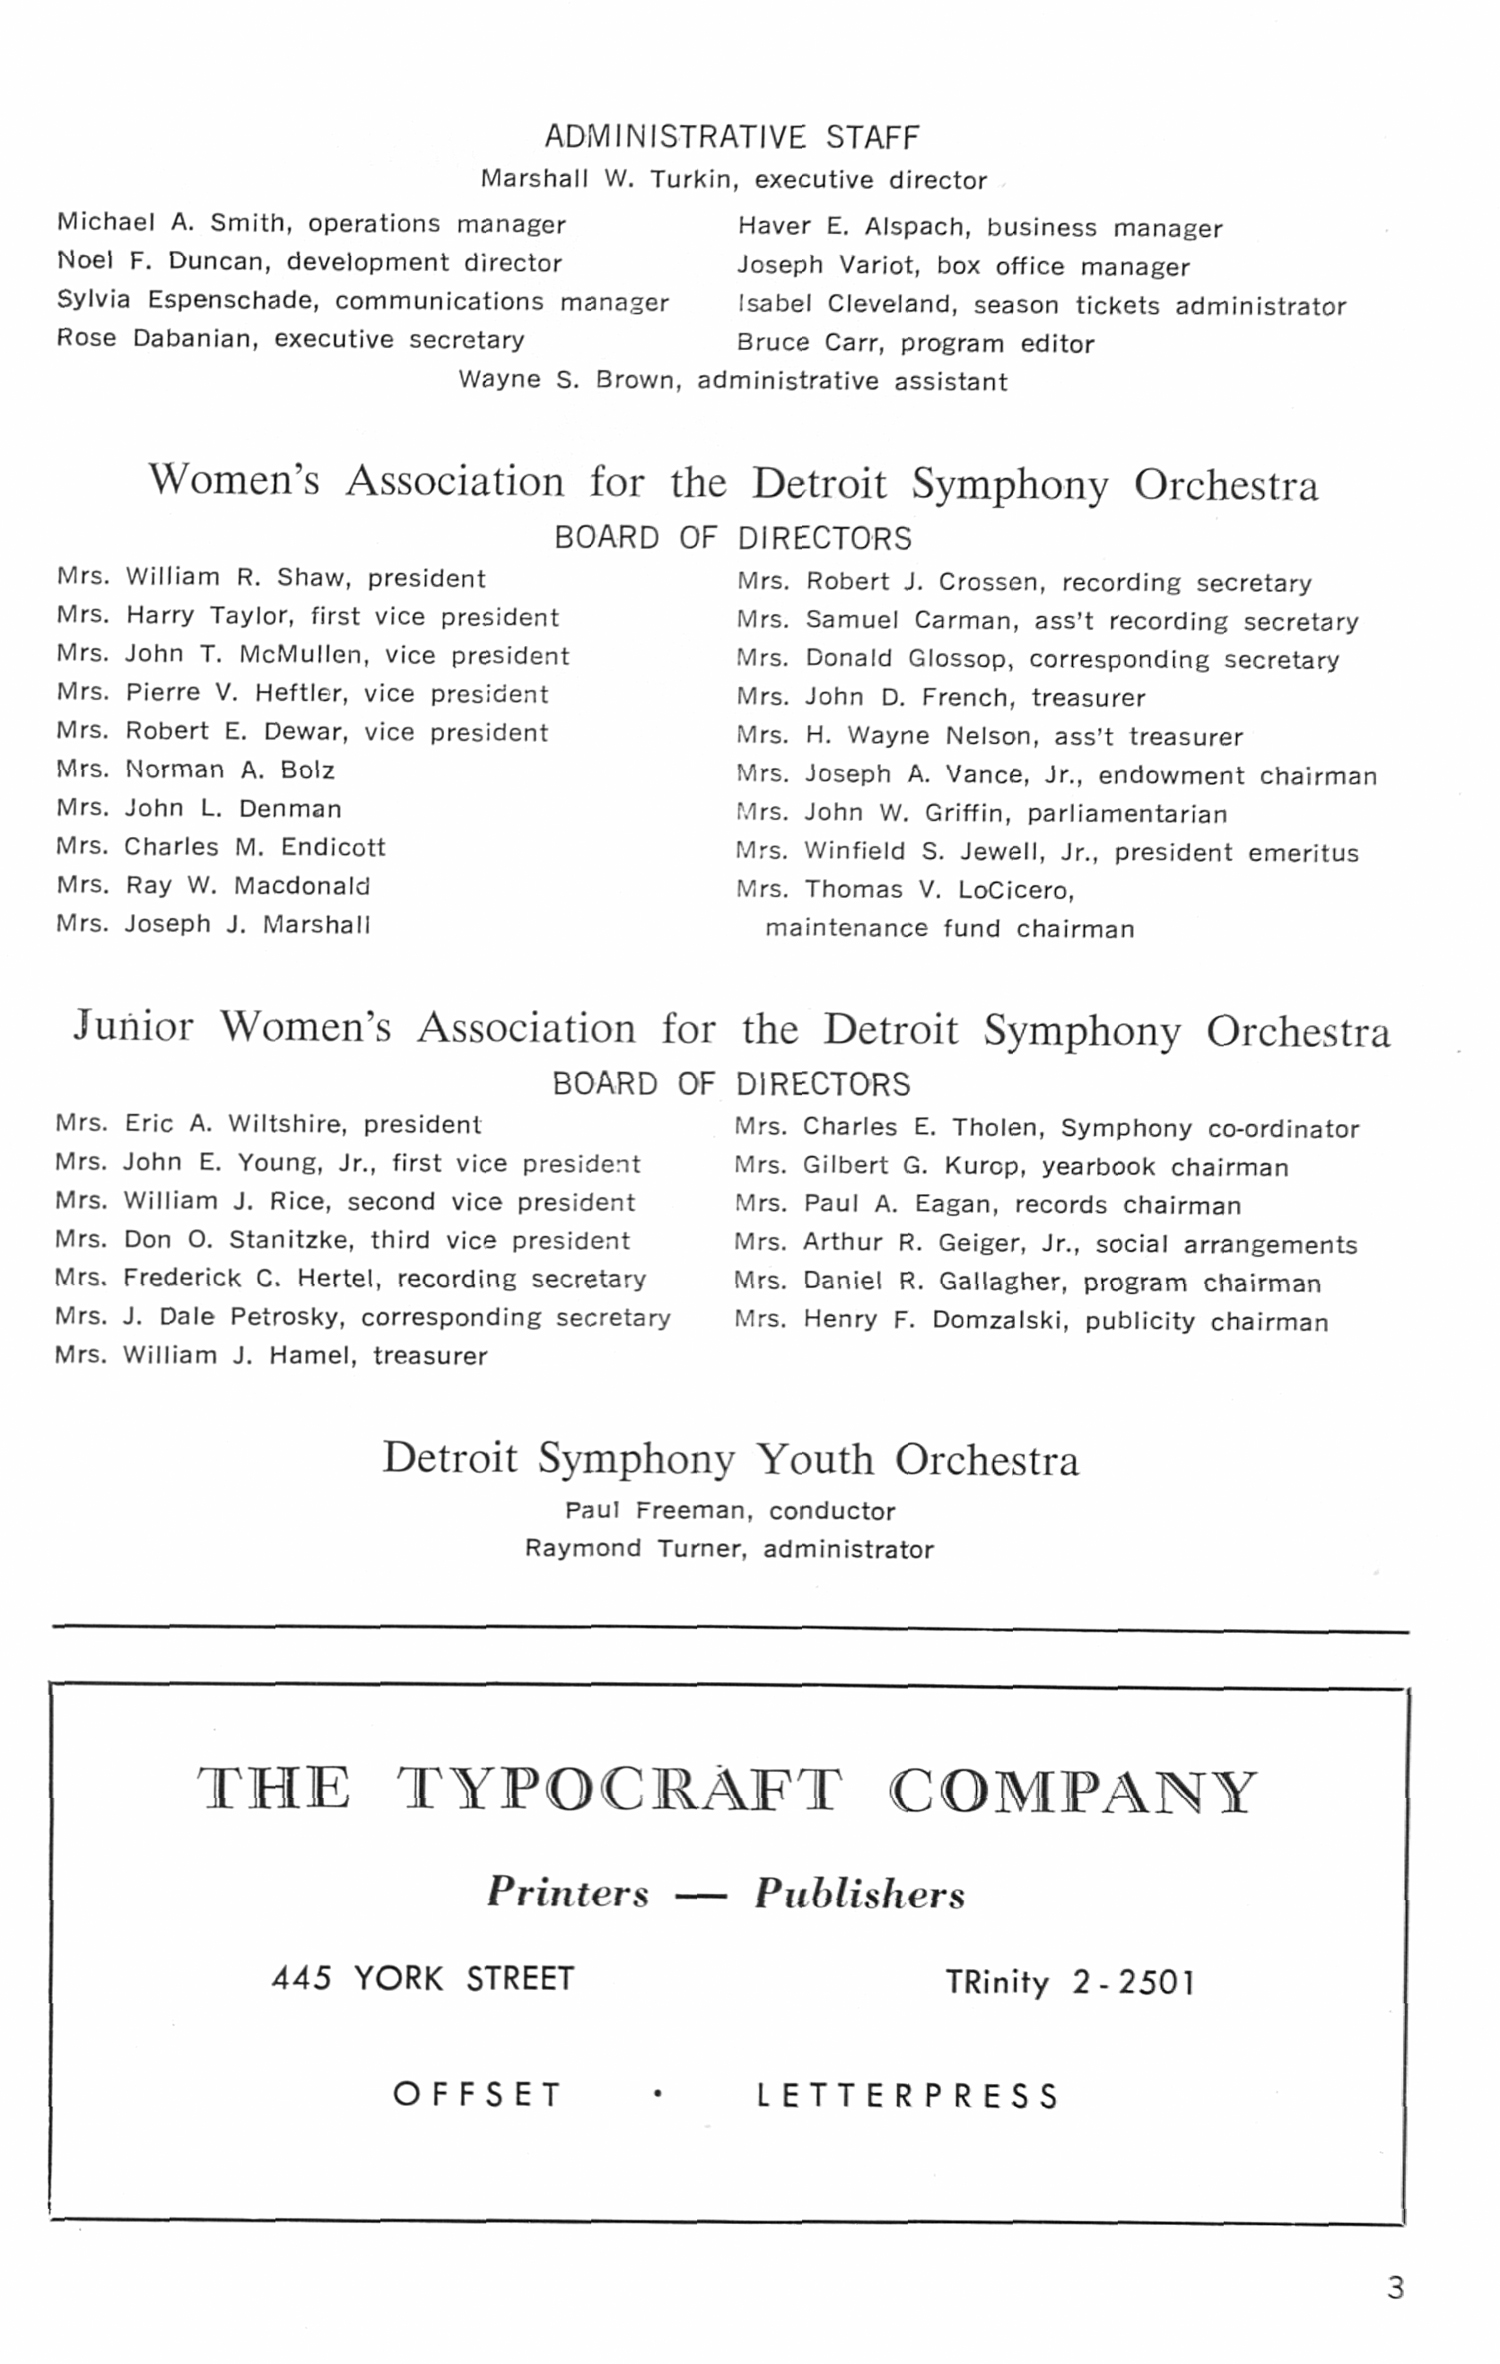 UMS Concert Program, January 11, 1975: Detroit Symphony -- The Detroit Symphony Orchestra, Inc. image